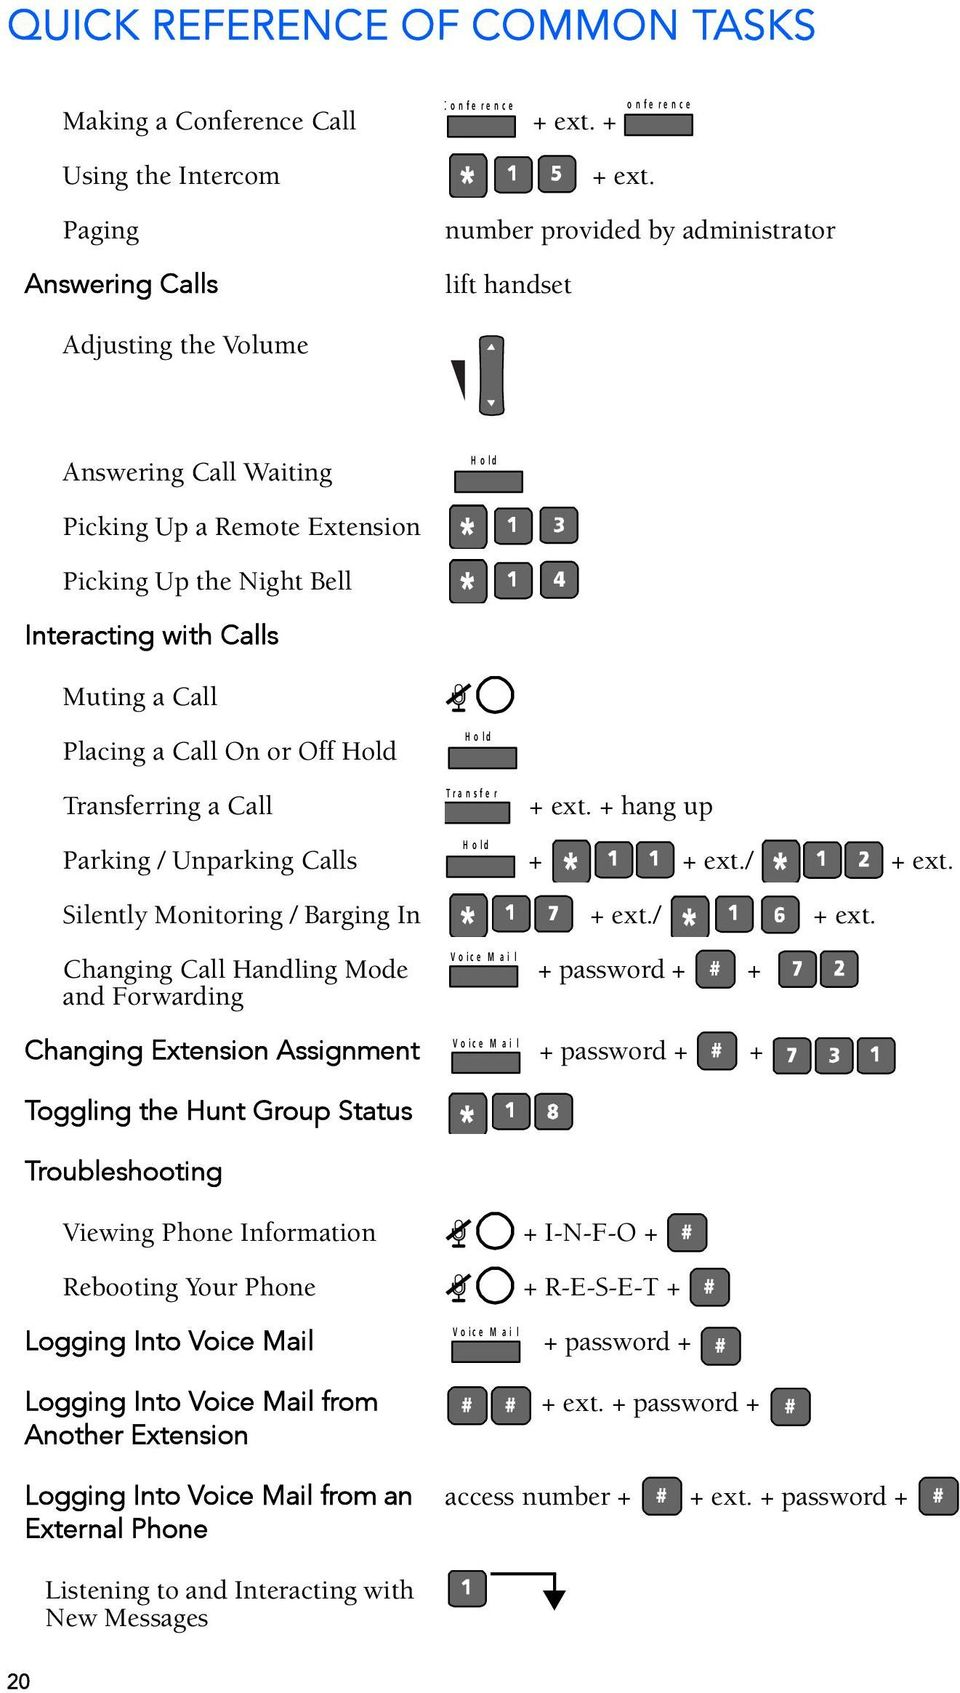 Muting a Call Placing a Call On or Off Hold H o l d Tra n sfe Transferring a Call r + ext. + hang up H o l d Parking / Unparking Calls + + ext./ + ext.